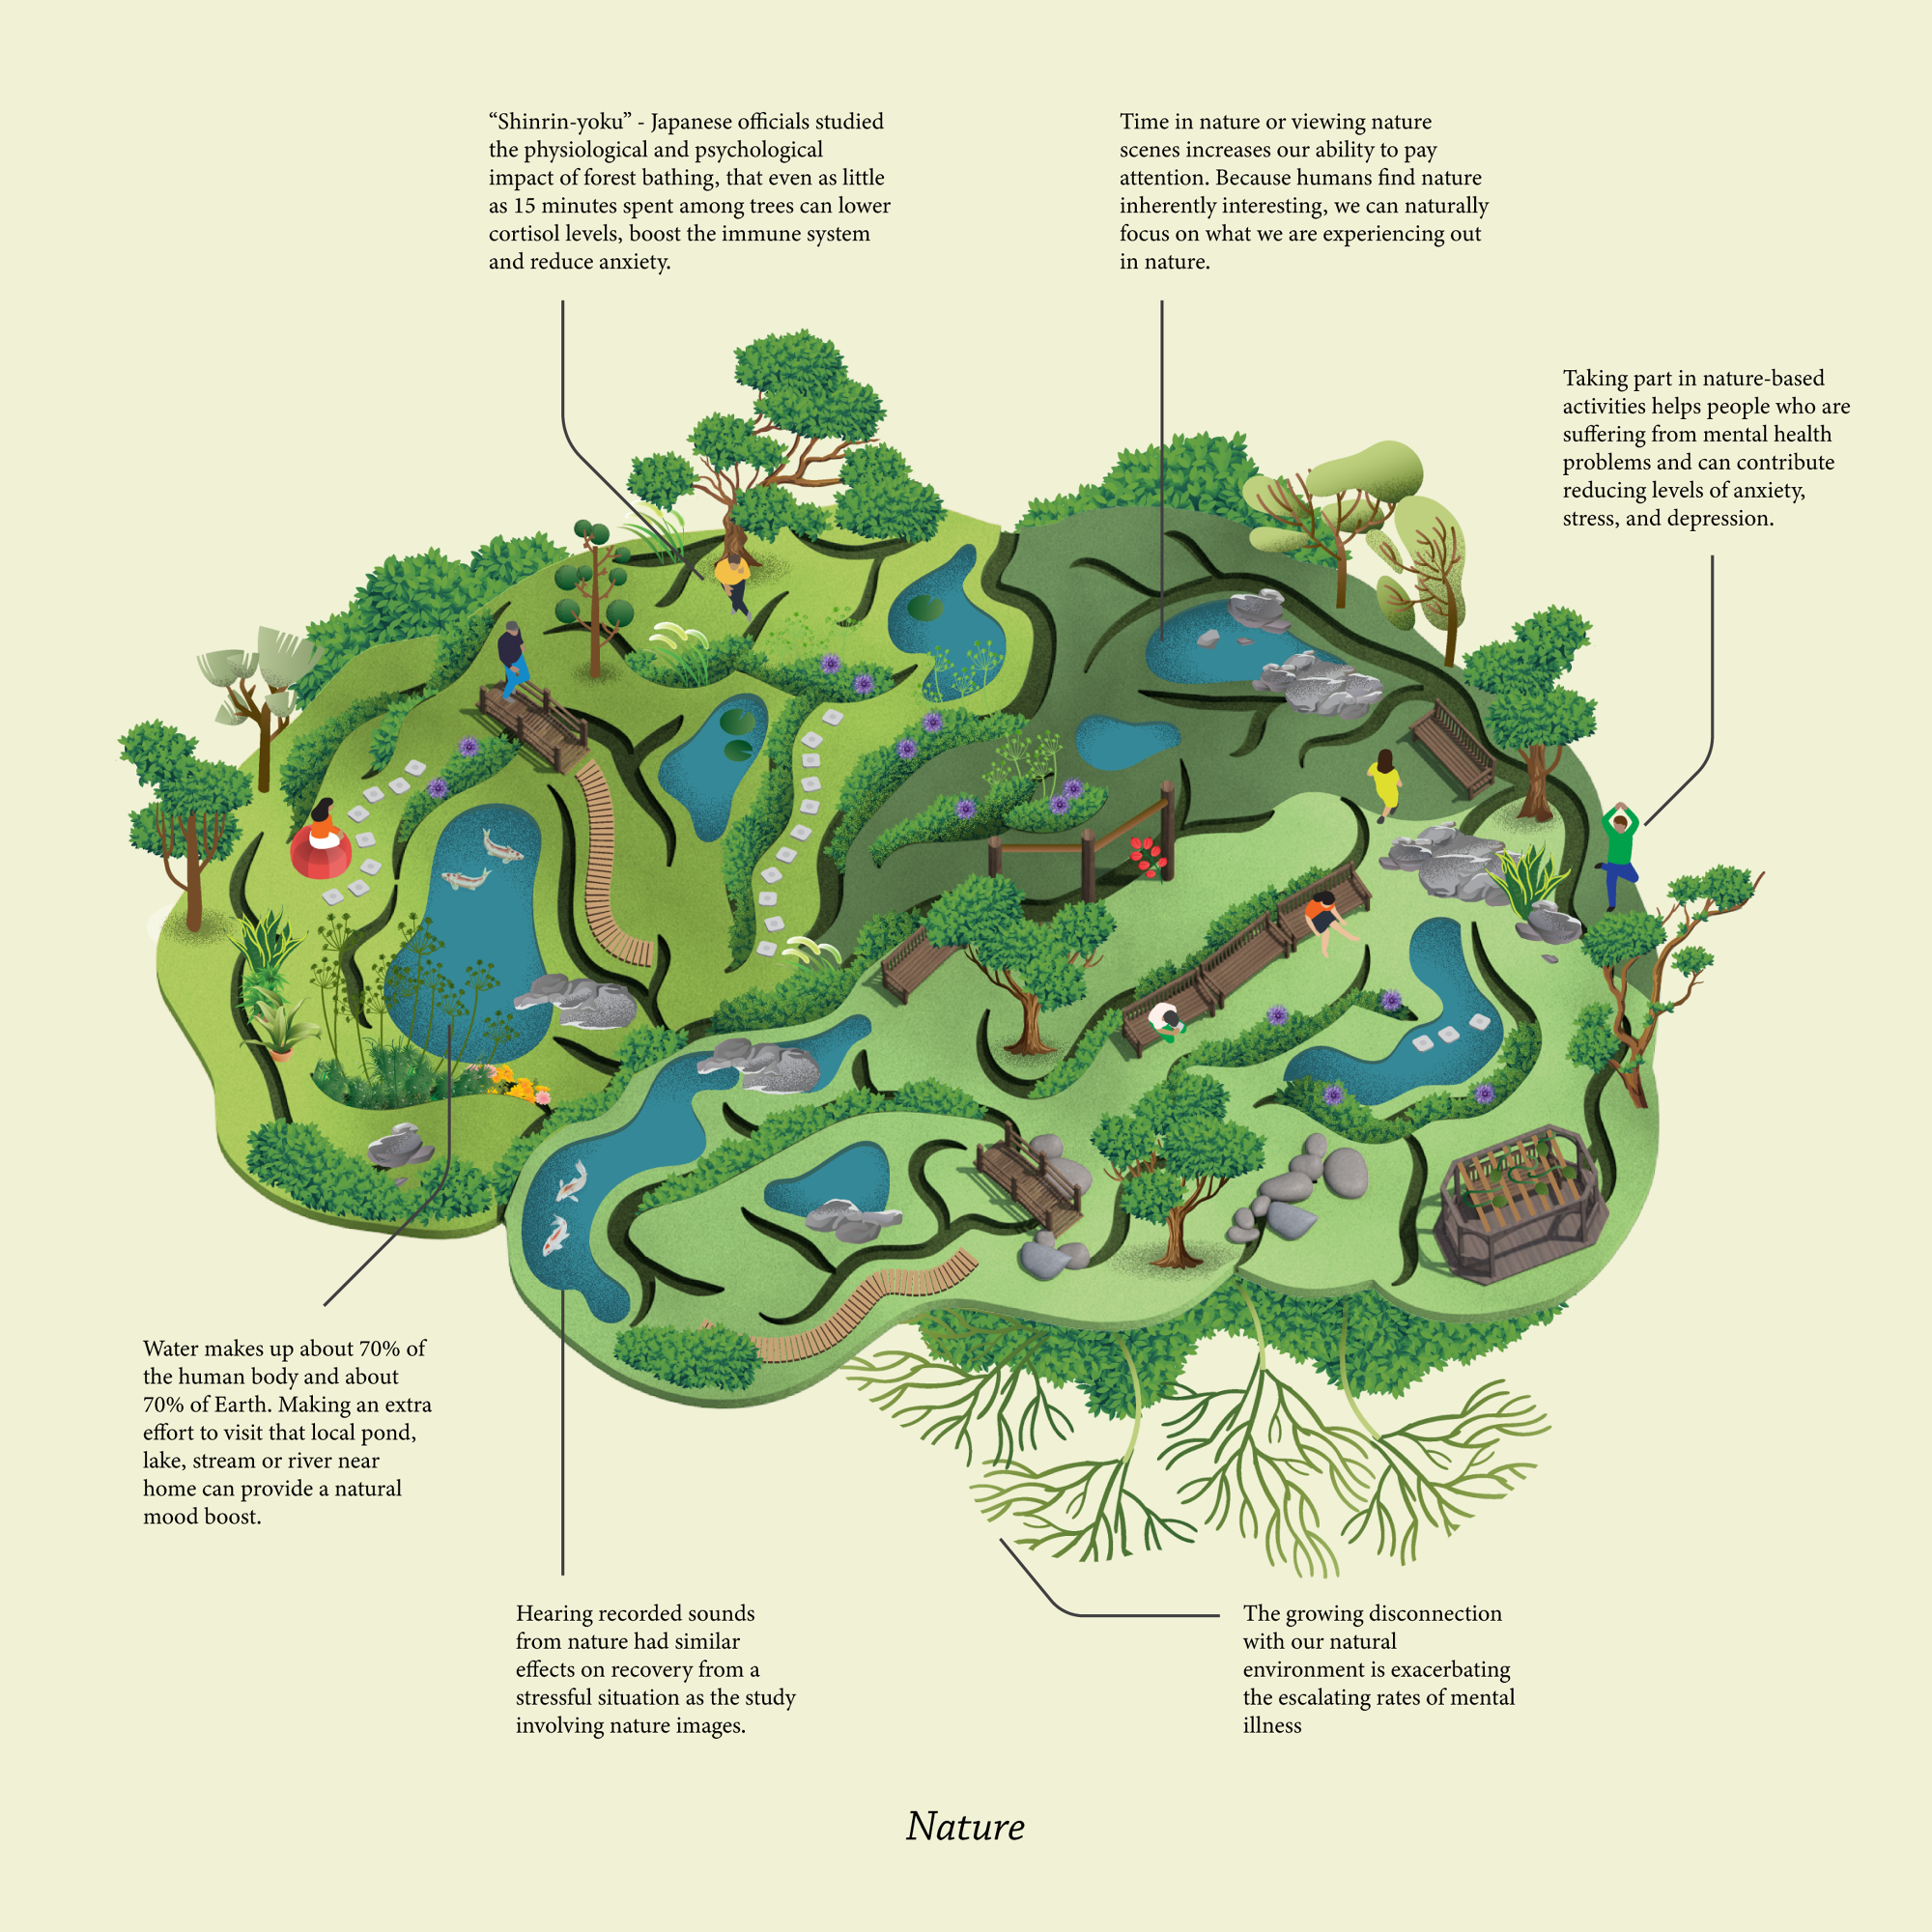 illustrated image of the human brain with lots of trees and greenery within and around it